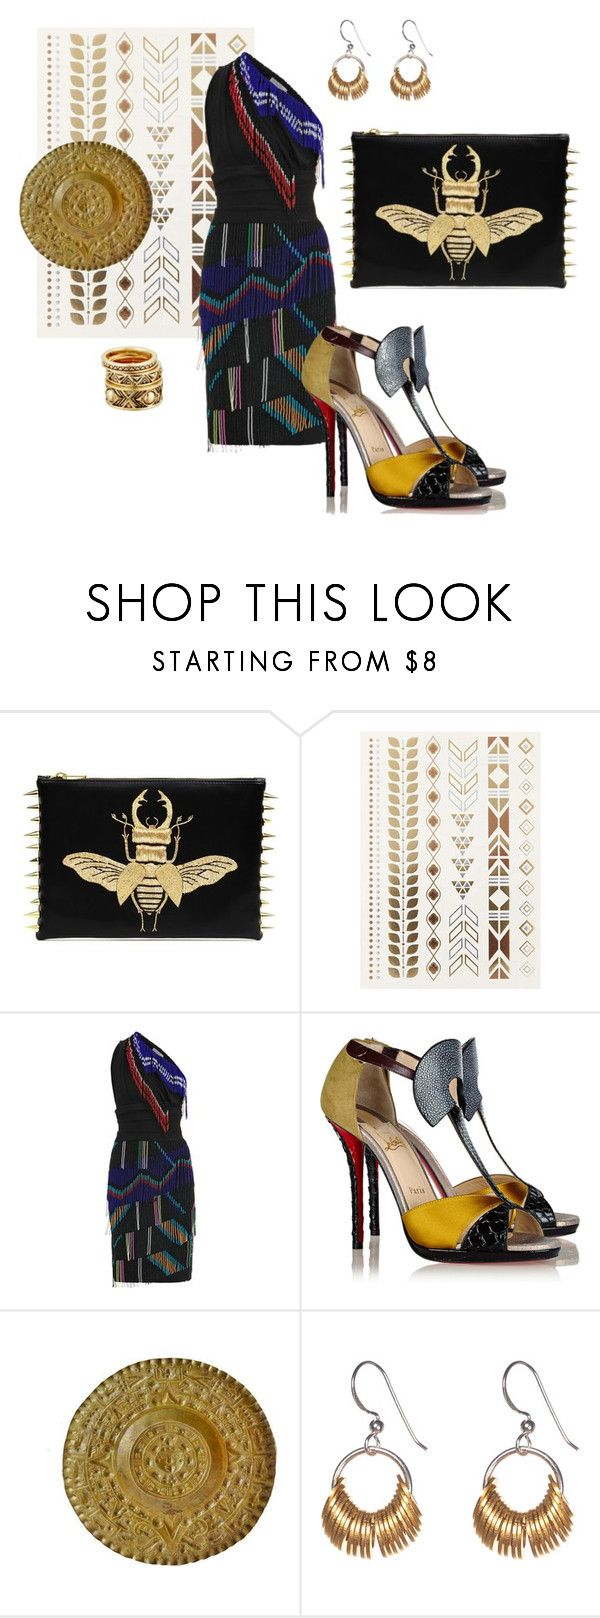 """Aztec"" by valeria-meira ❤ liked on Polyvore featuring Topshop, Preen, Christian Louboutin, Alice Menter, House of Harlow 1960, tribal_jewelry and fringed_dress"